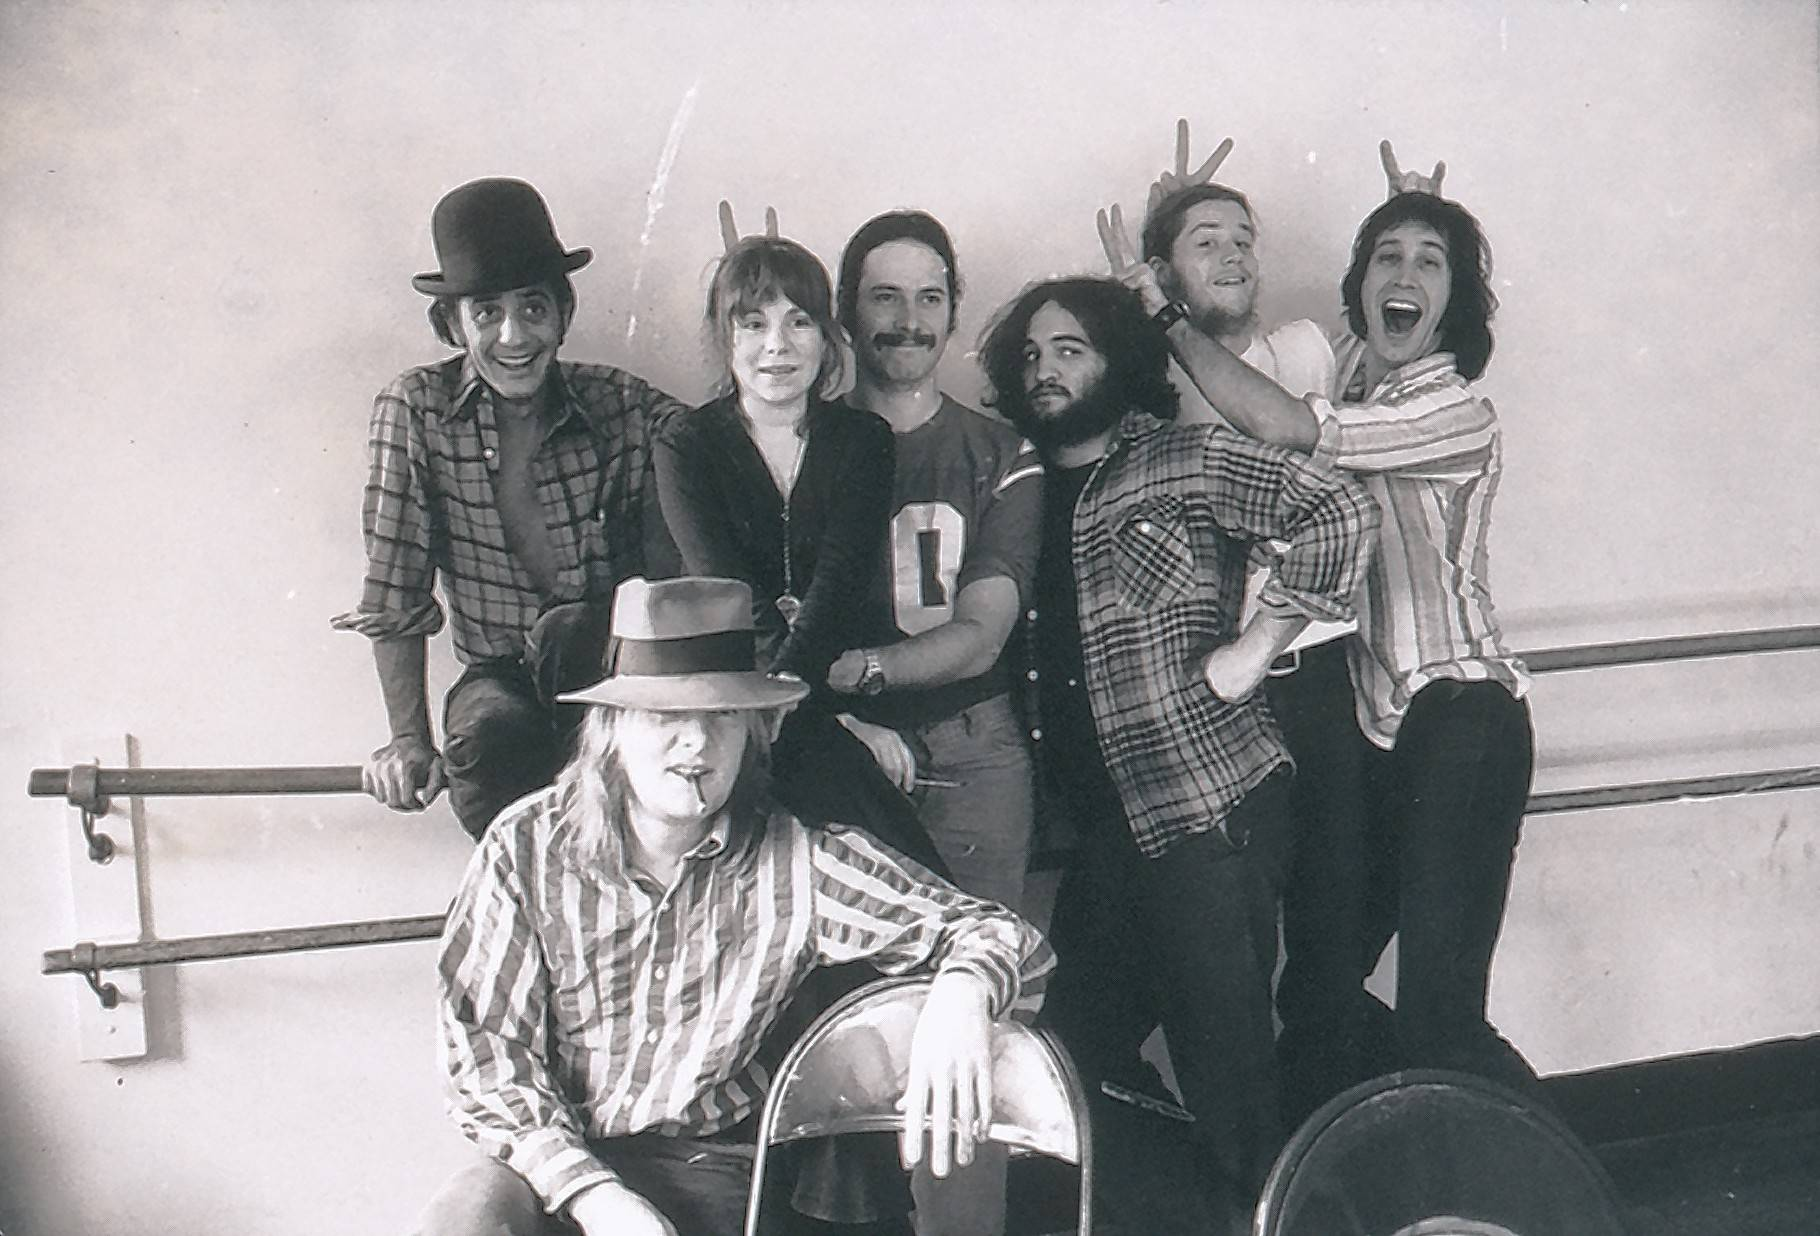 """Drunk Stoned Brilliant Dead: The Story of the National Lampoon"" looks back on the magazine and production company and those involved with it — including Wheaton native Jim Belushi."